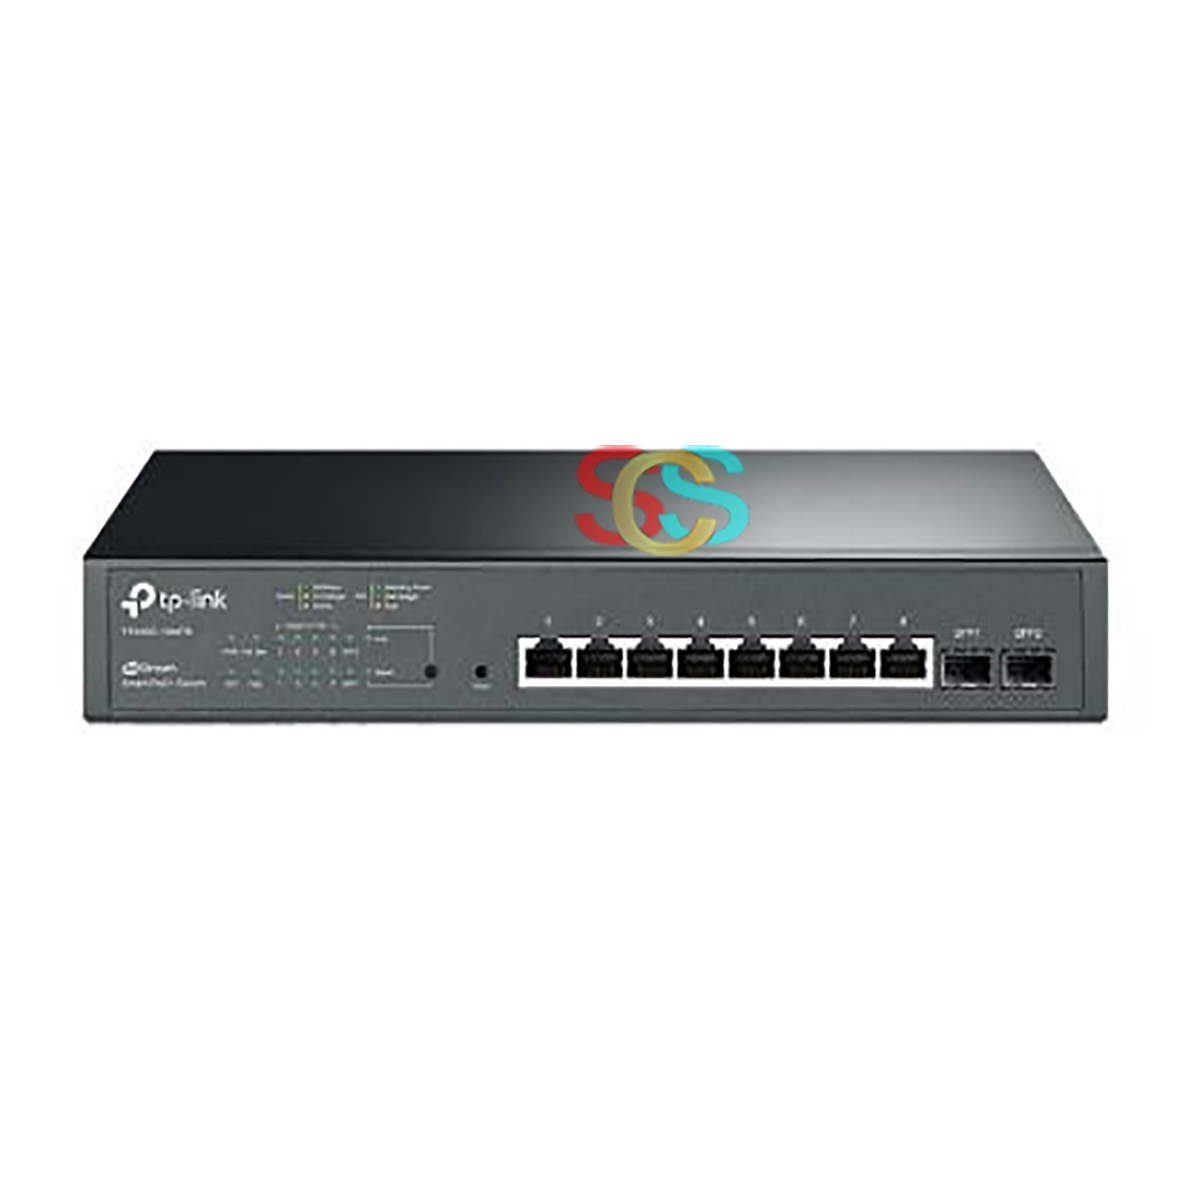 TP-Link T1500G-10MPS JetStream 8 Port All Gigabit Smart All PoE+ Switch with 2 SFP (PoE 116W)